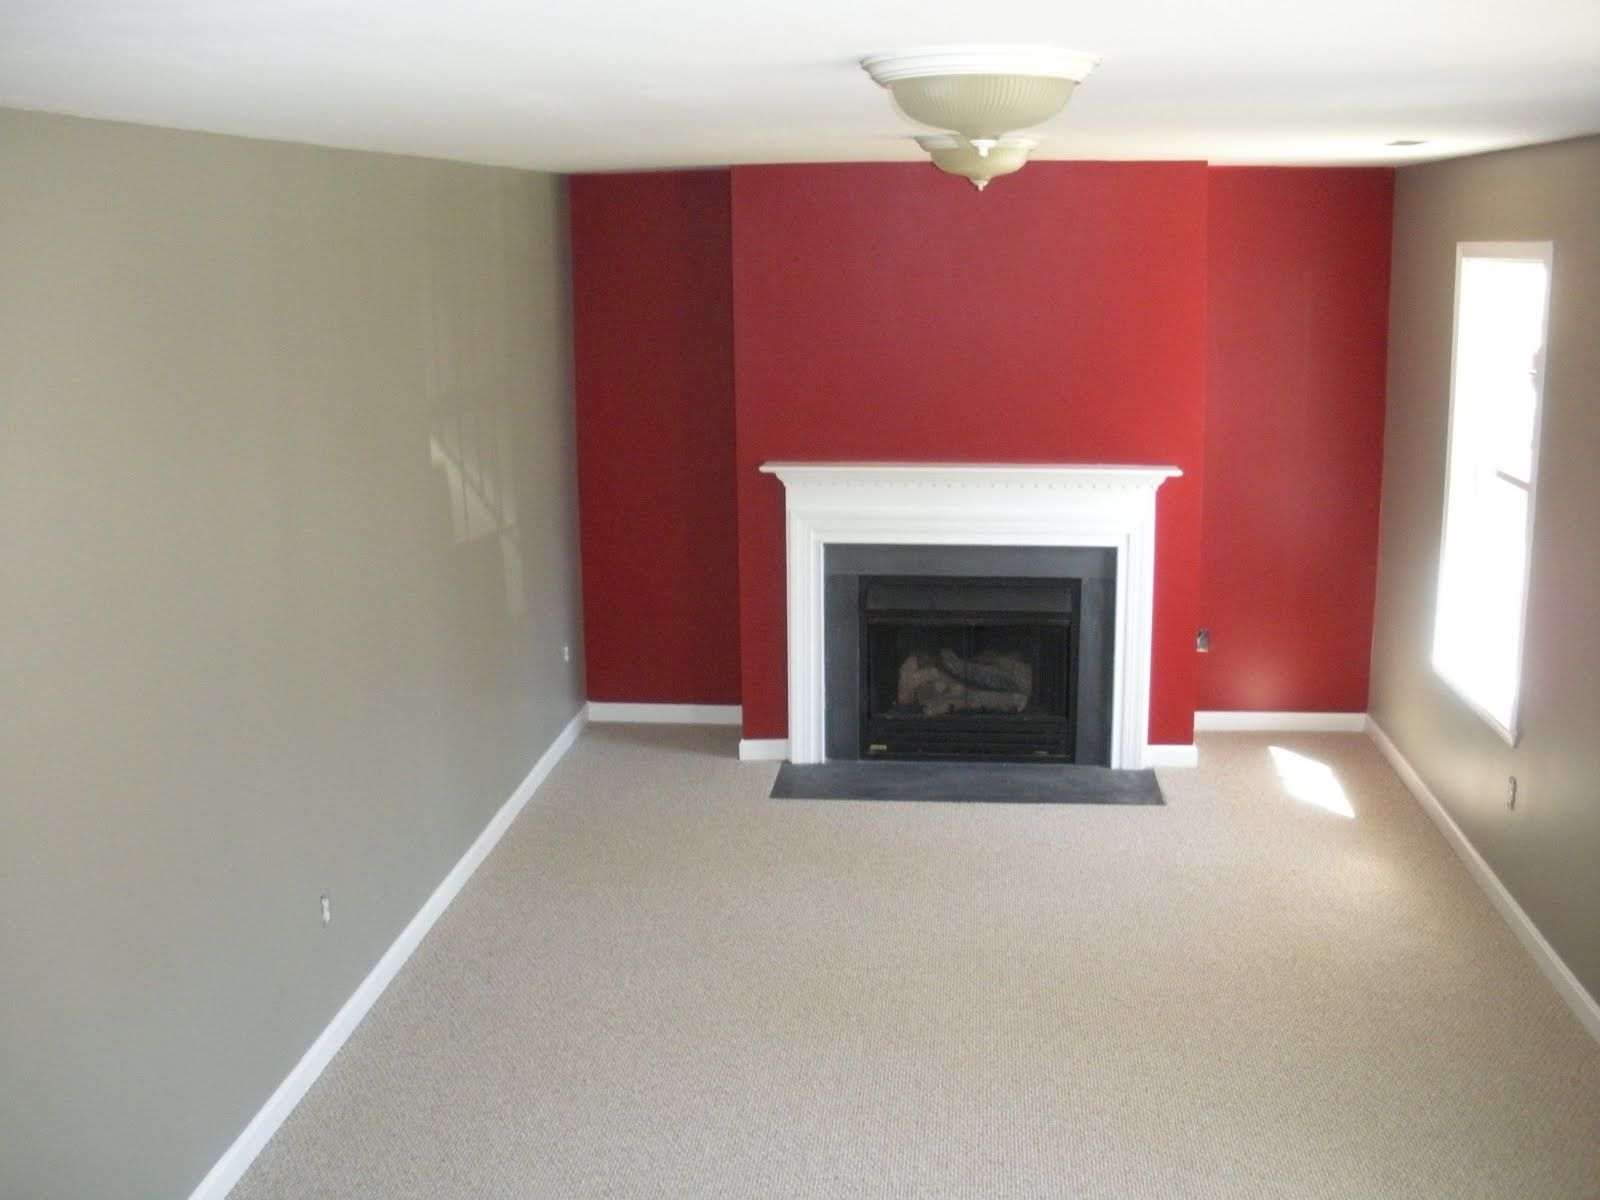 benjamin moore caliente red, rockport gray, and wilmington tan